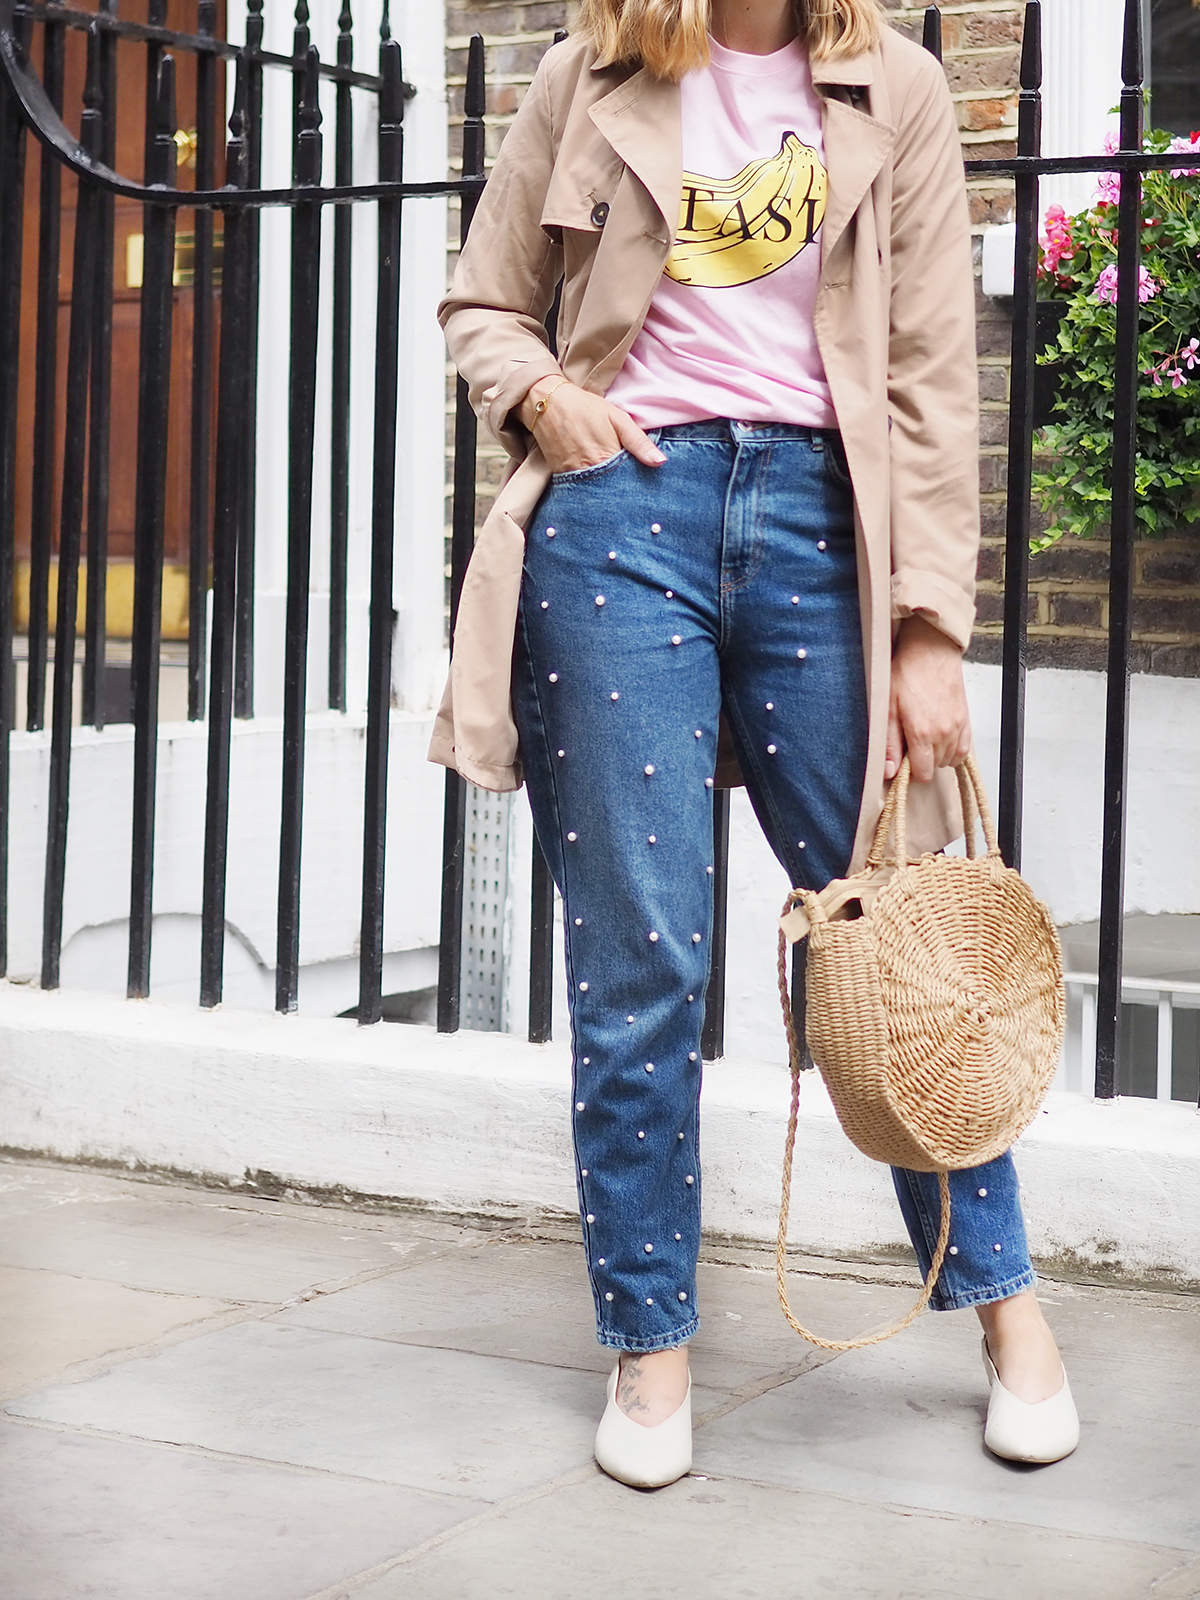 Bershka tee and jeans outfit